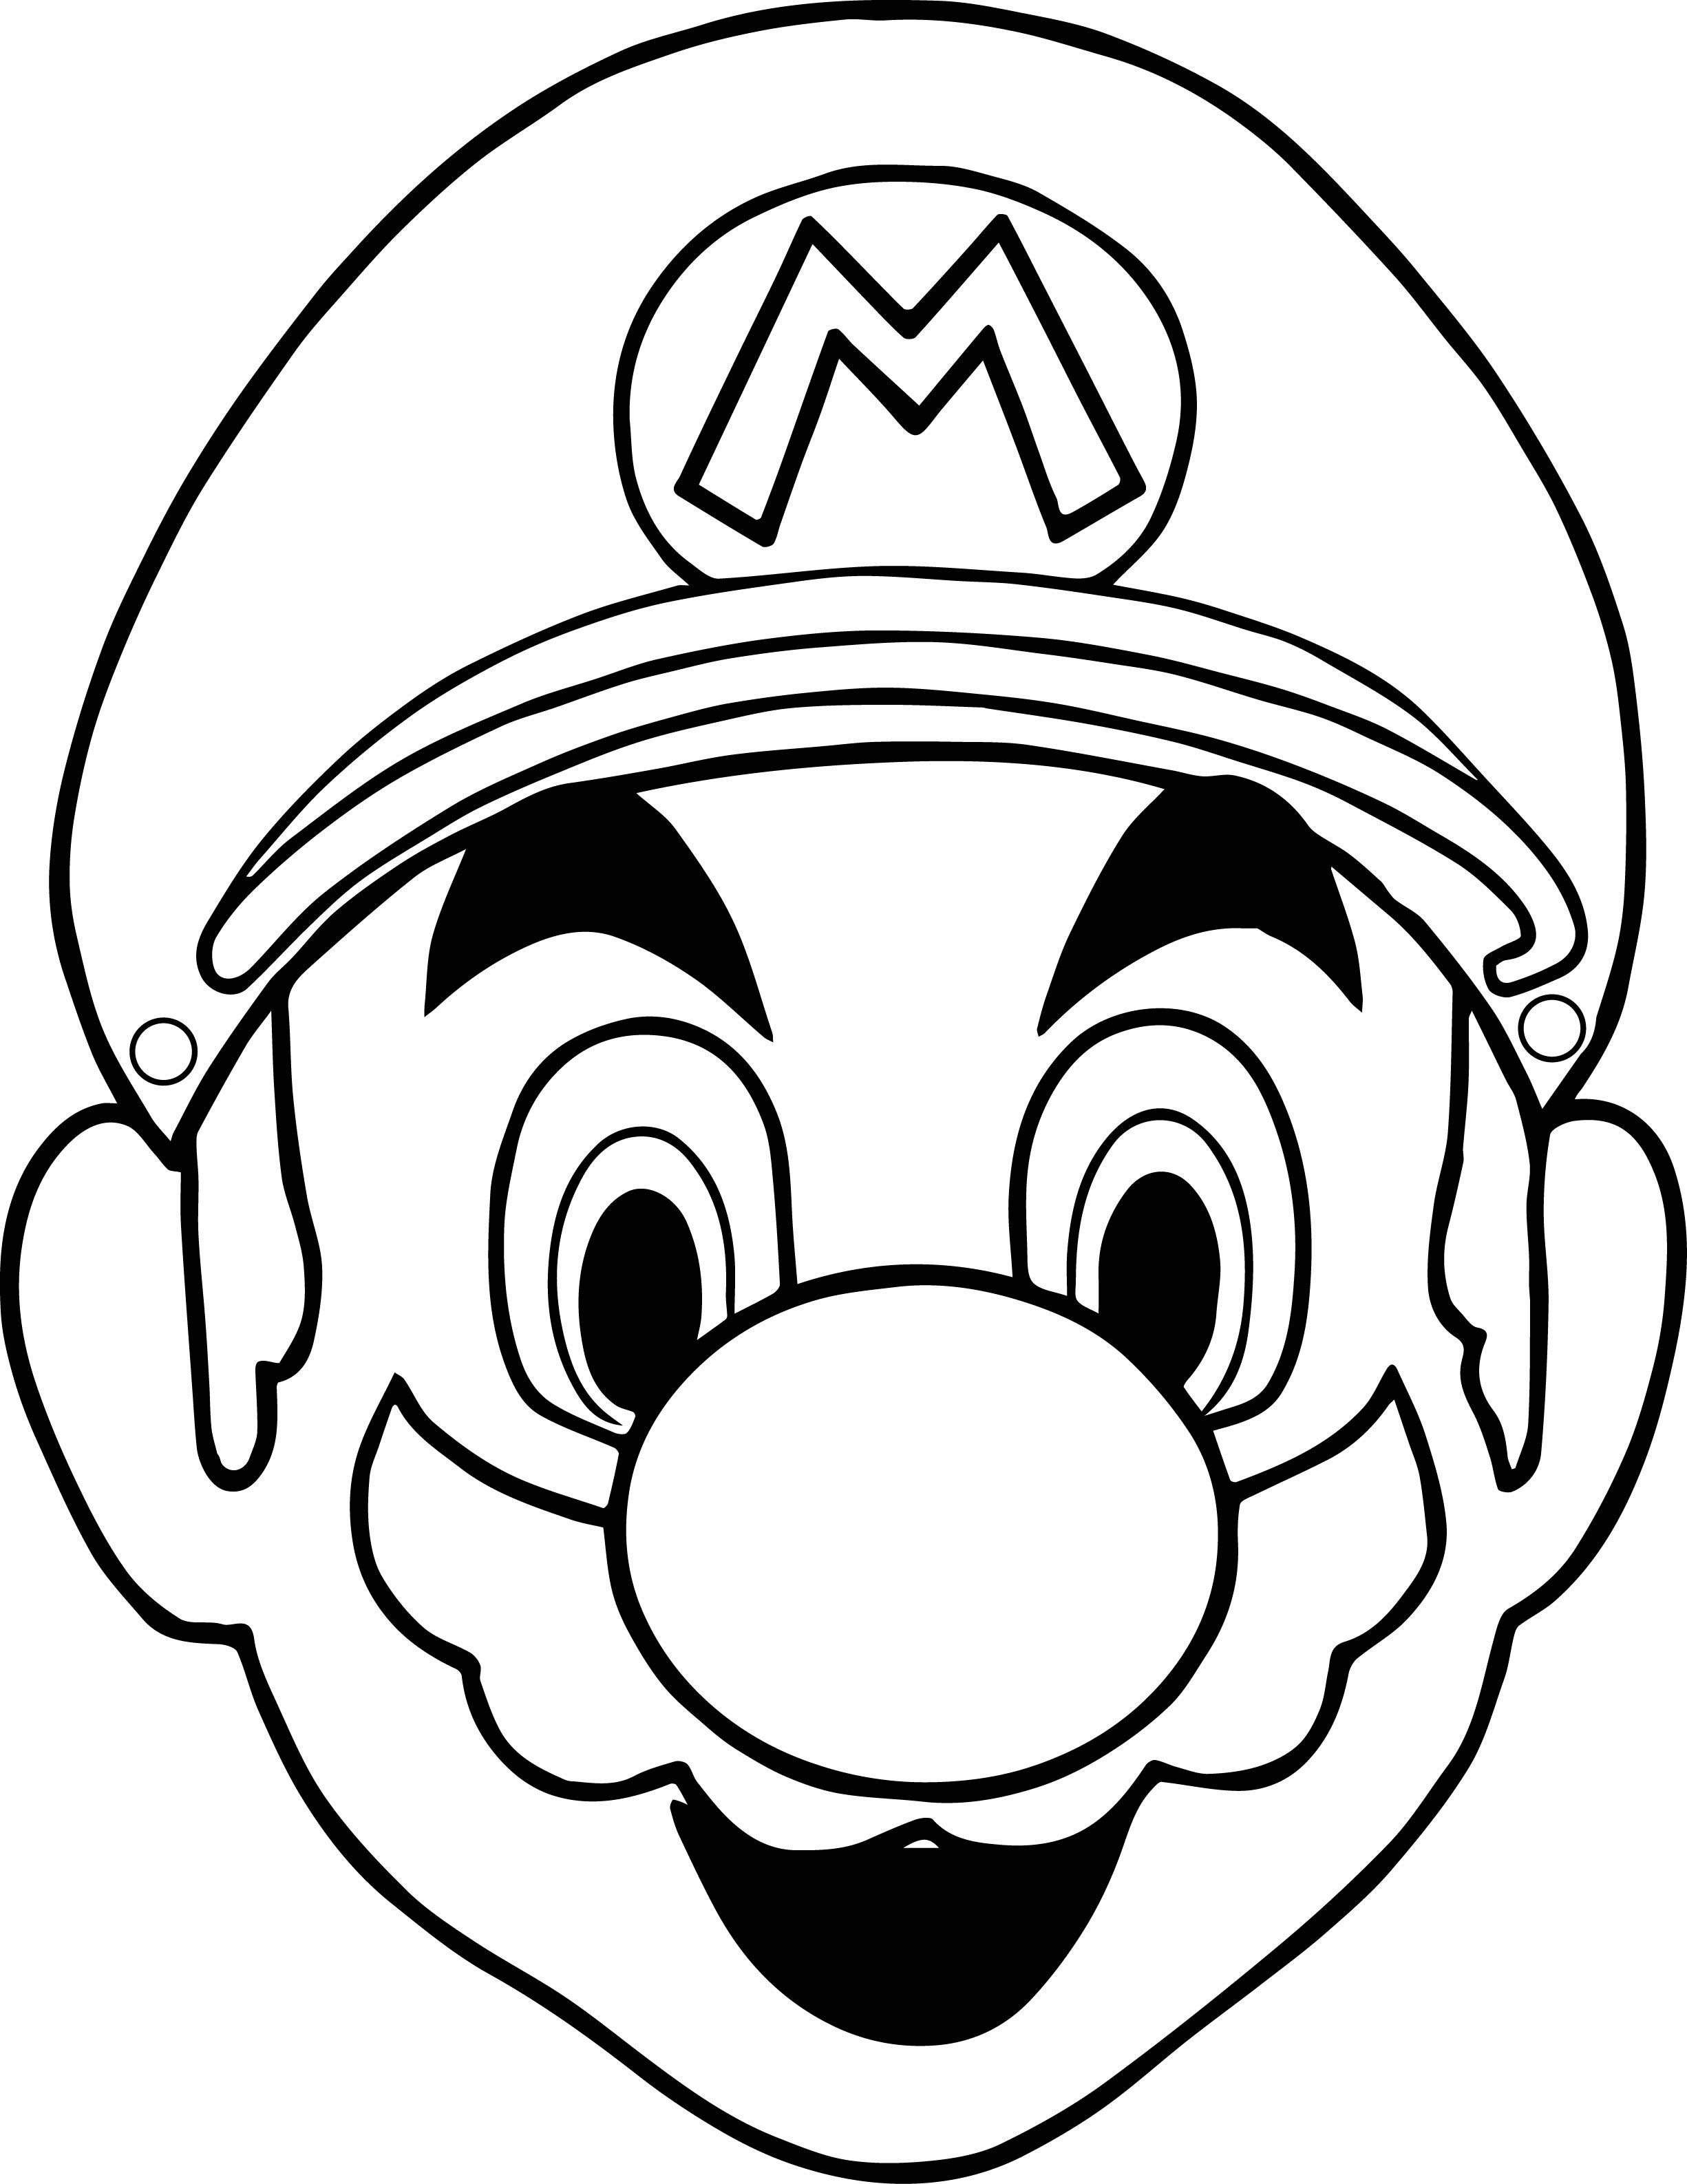 Halloween Masks Super Mario Face Coloring Page Super Mario Coloring Pages Mario Coloring Pages Dinosaur Coloring Pages